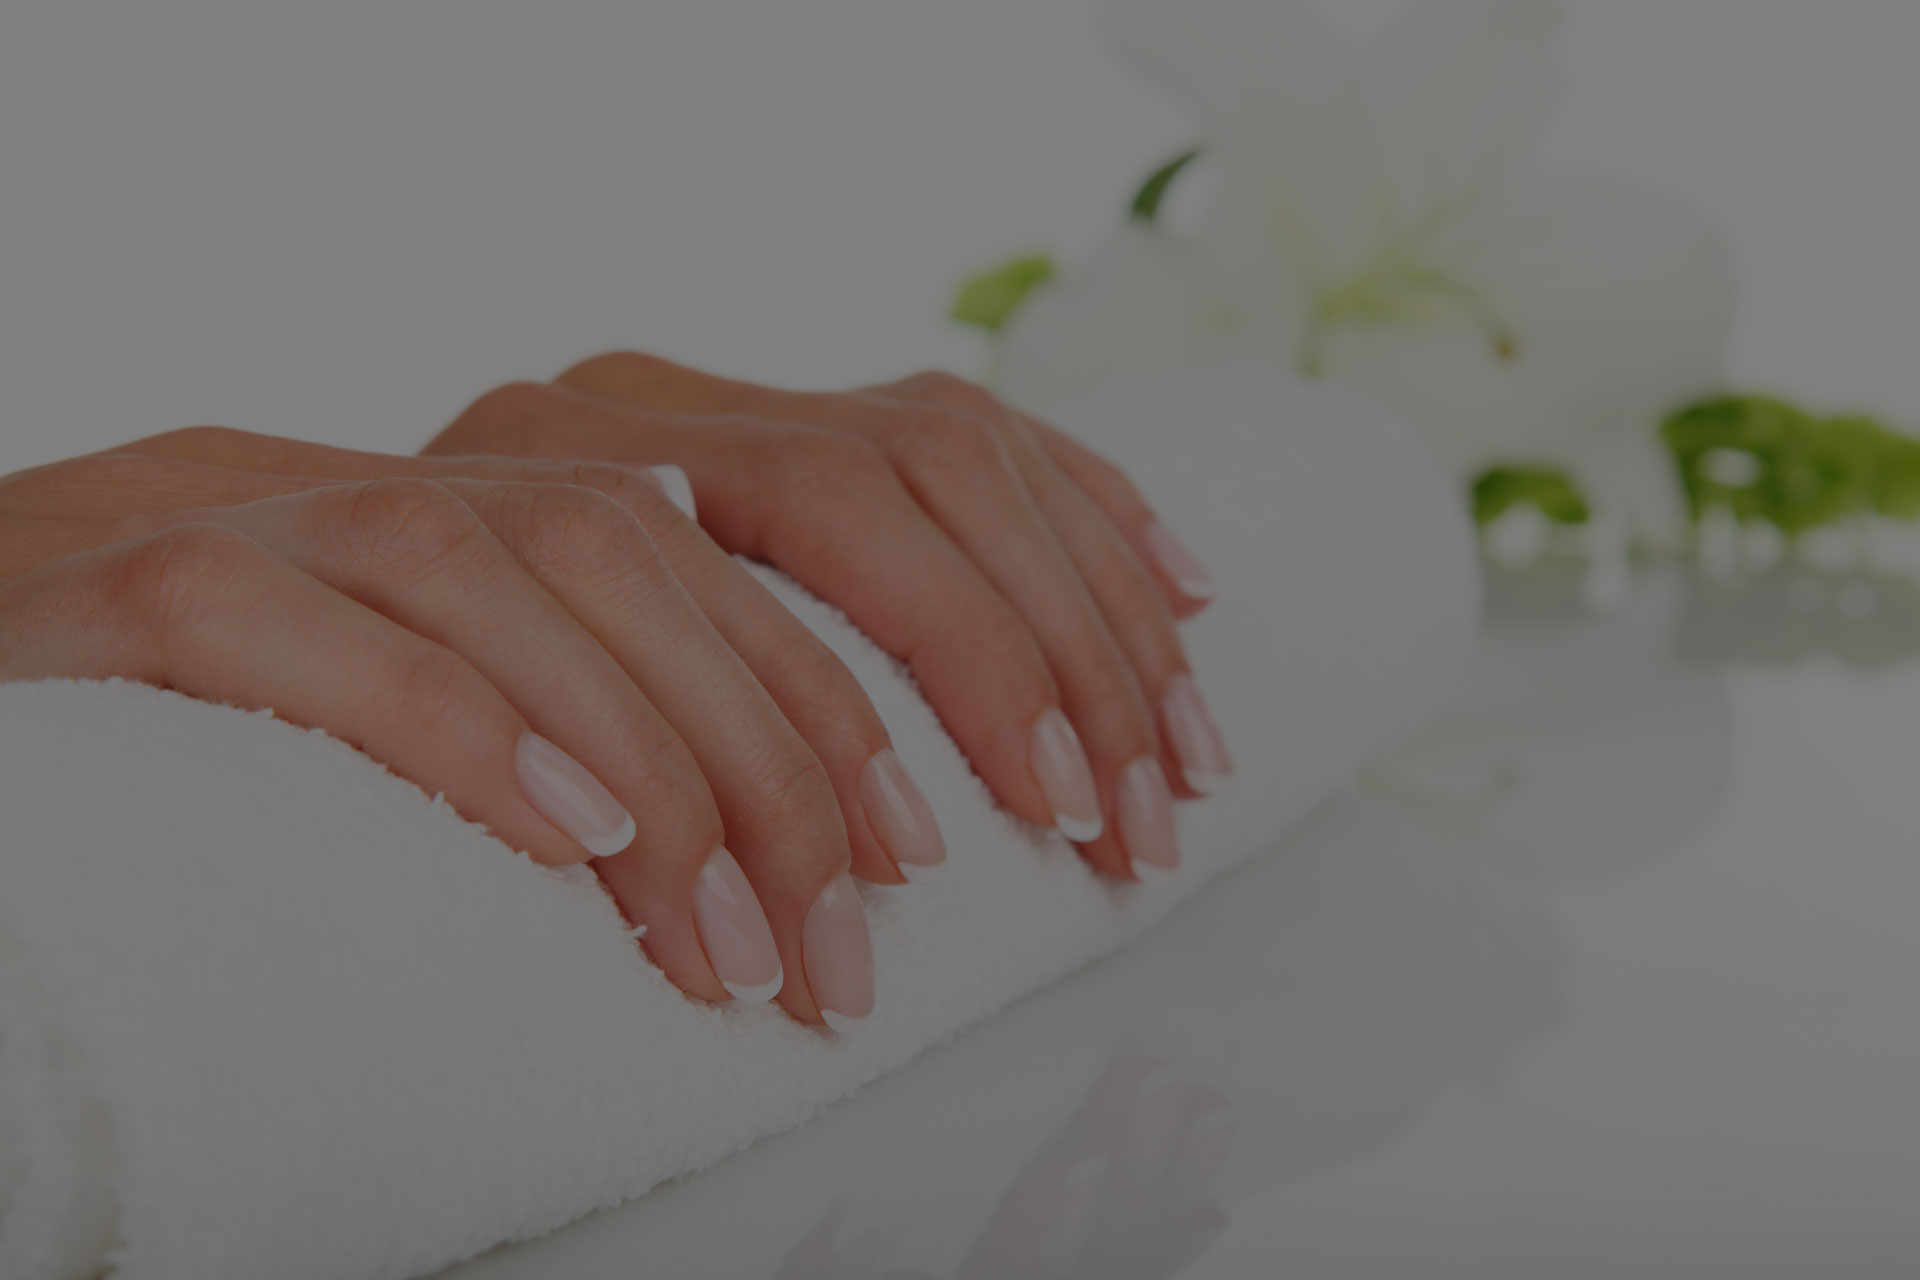 Relax and pamper yourself with a manicure